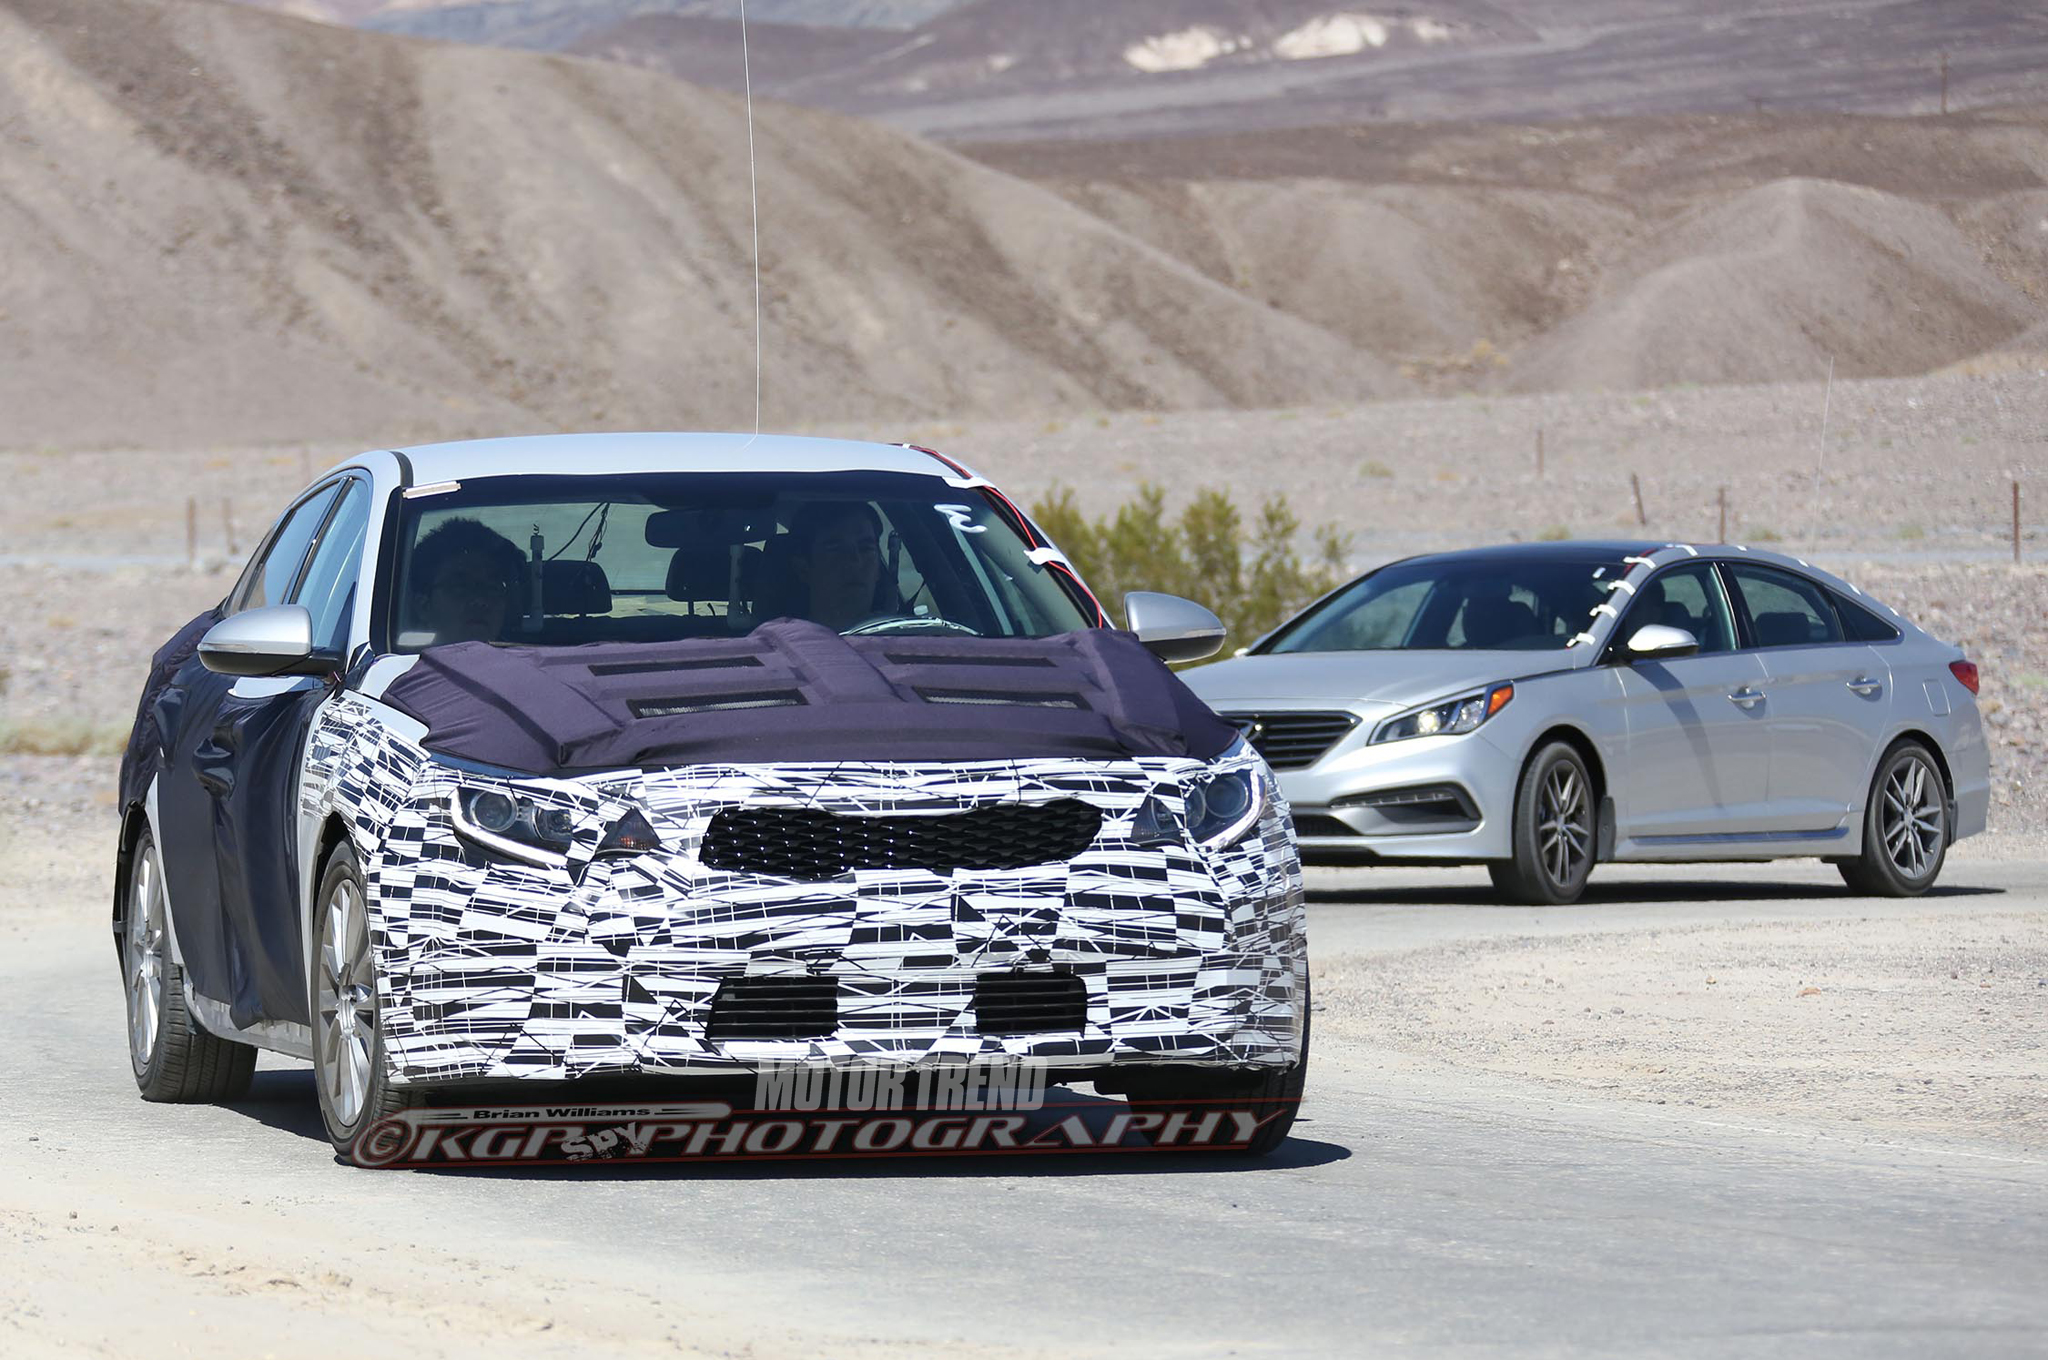 Spied: 2016 Kia Optima Hits The Desert